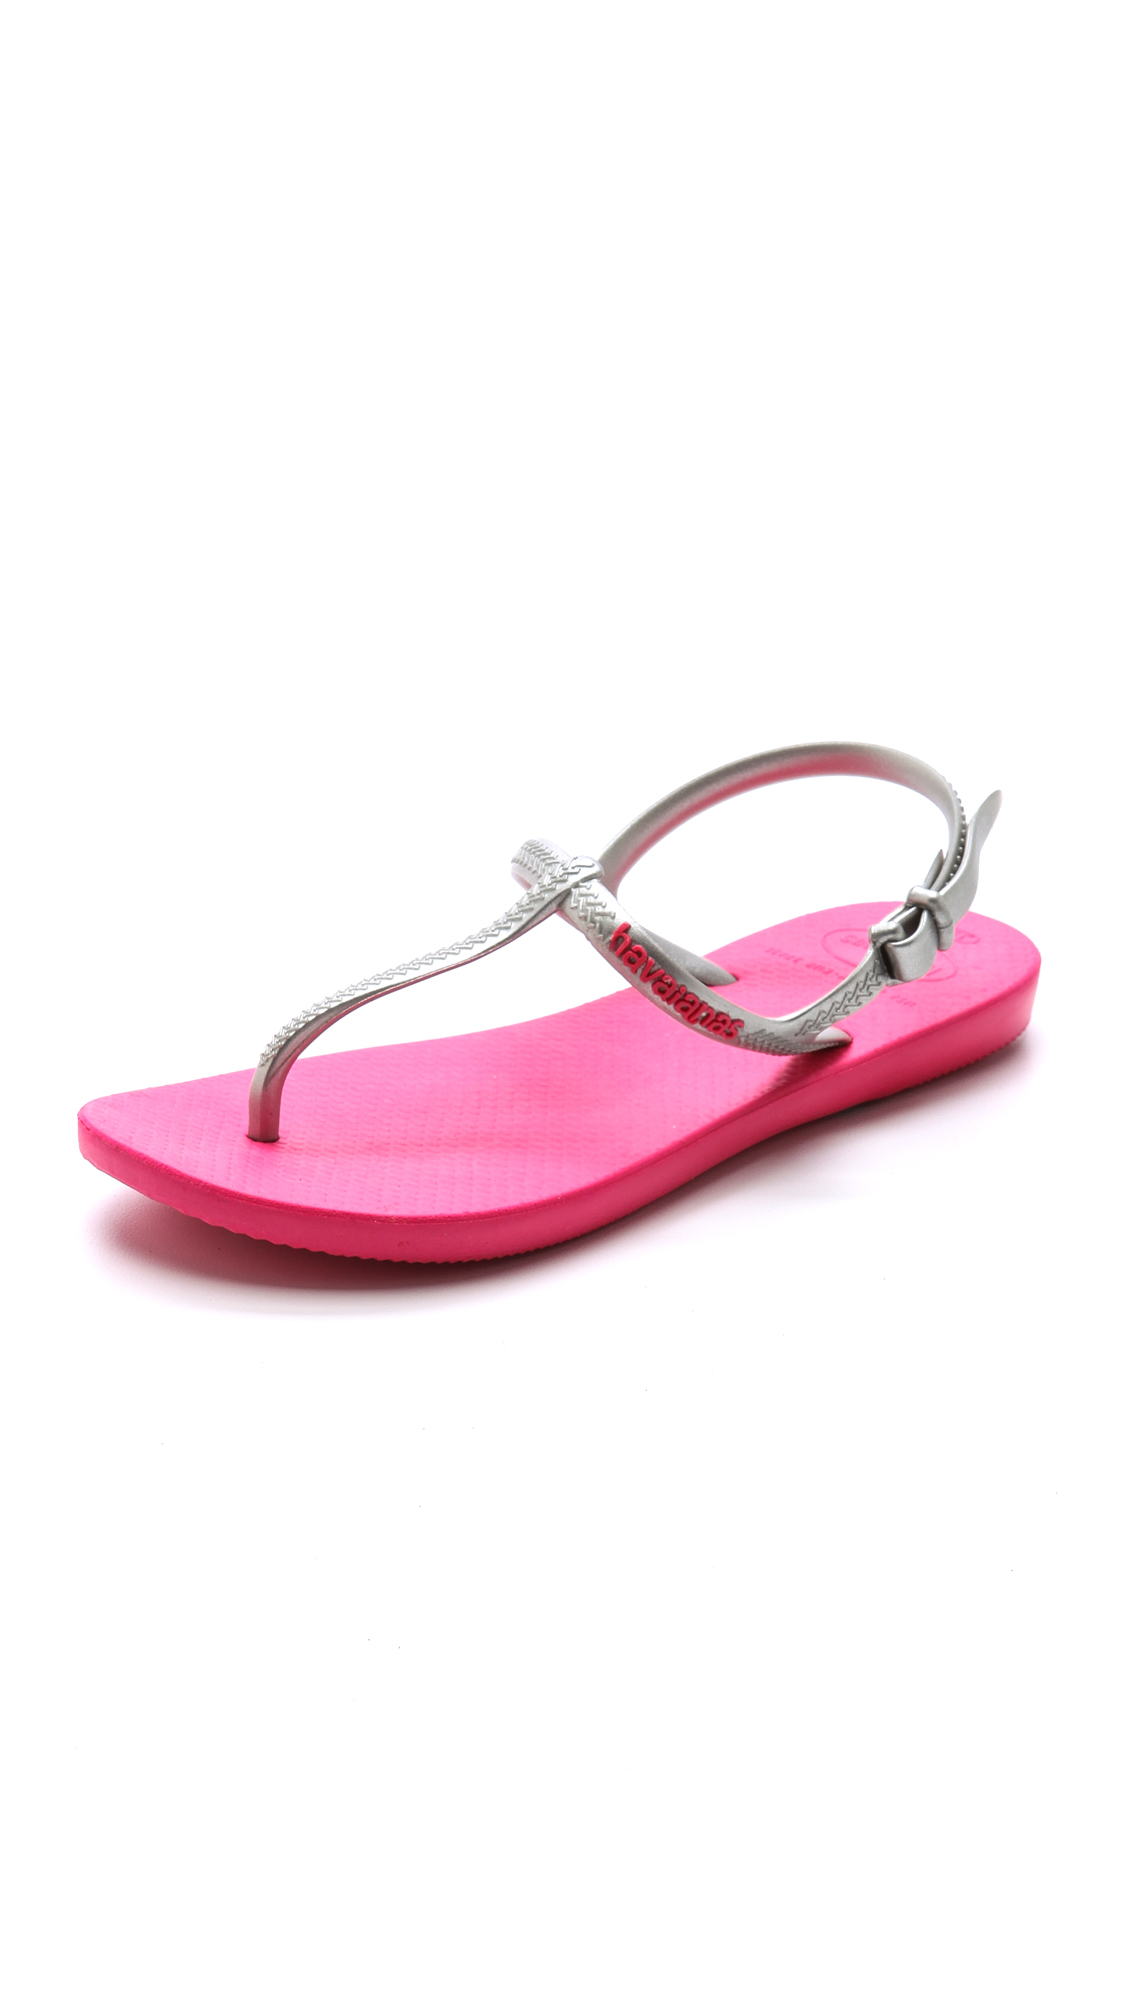 7614f197a5ce2 Lyst - Havaianas Freedom T- Strap Sandals in Metallic